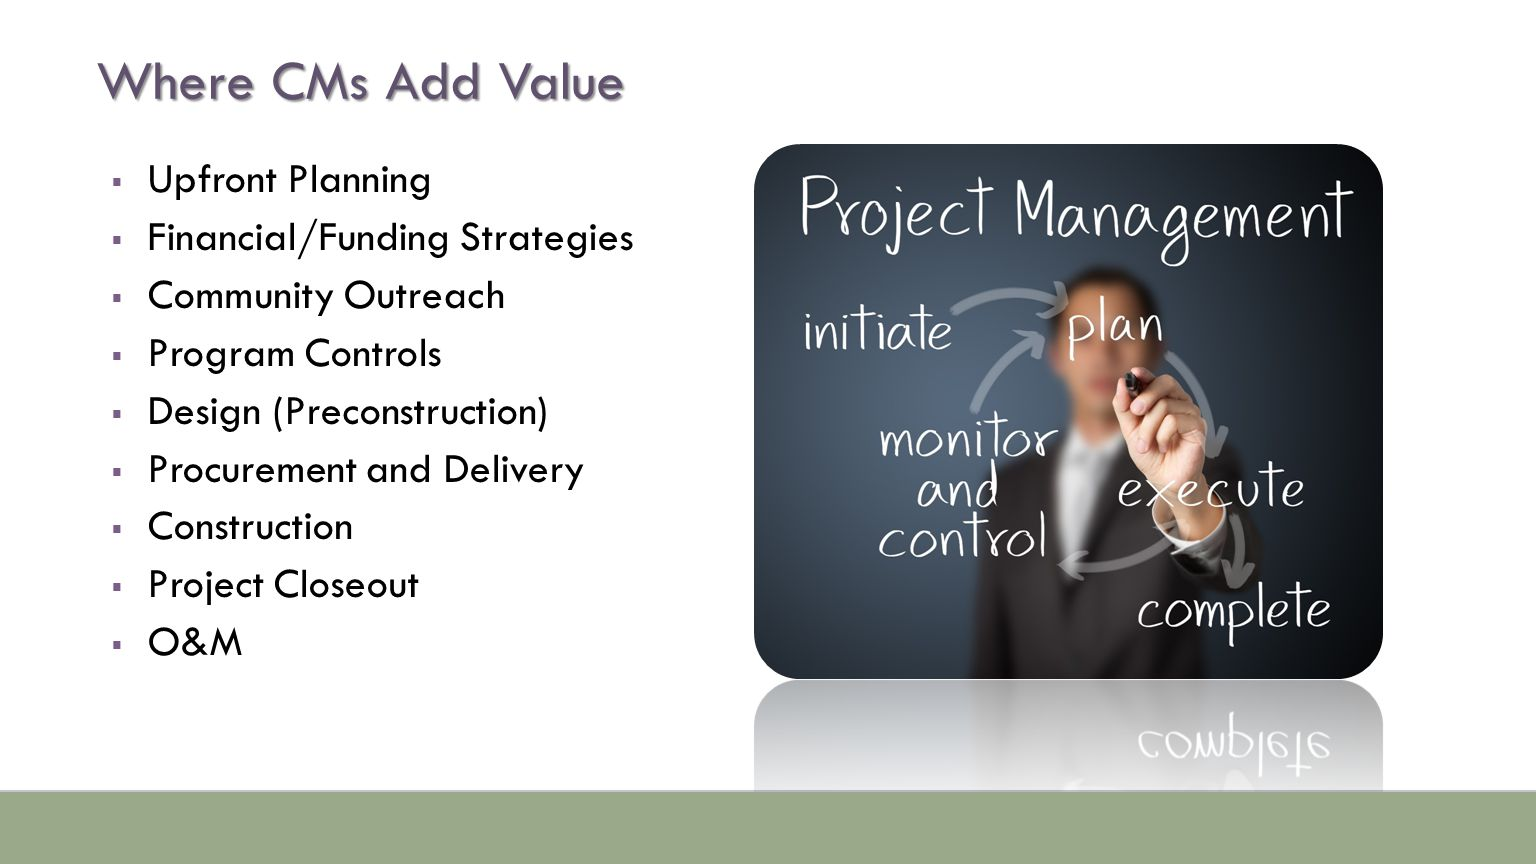 Where CMs Add Value  Upfront Planning  Financial/Funding Strategies  Community Outreach  Program Controls  Design (Preconstruction)  Procurement and Delivery  Construction  Project Closeout  O&M